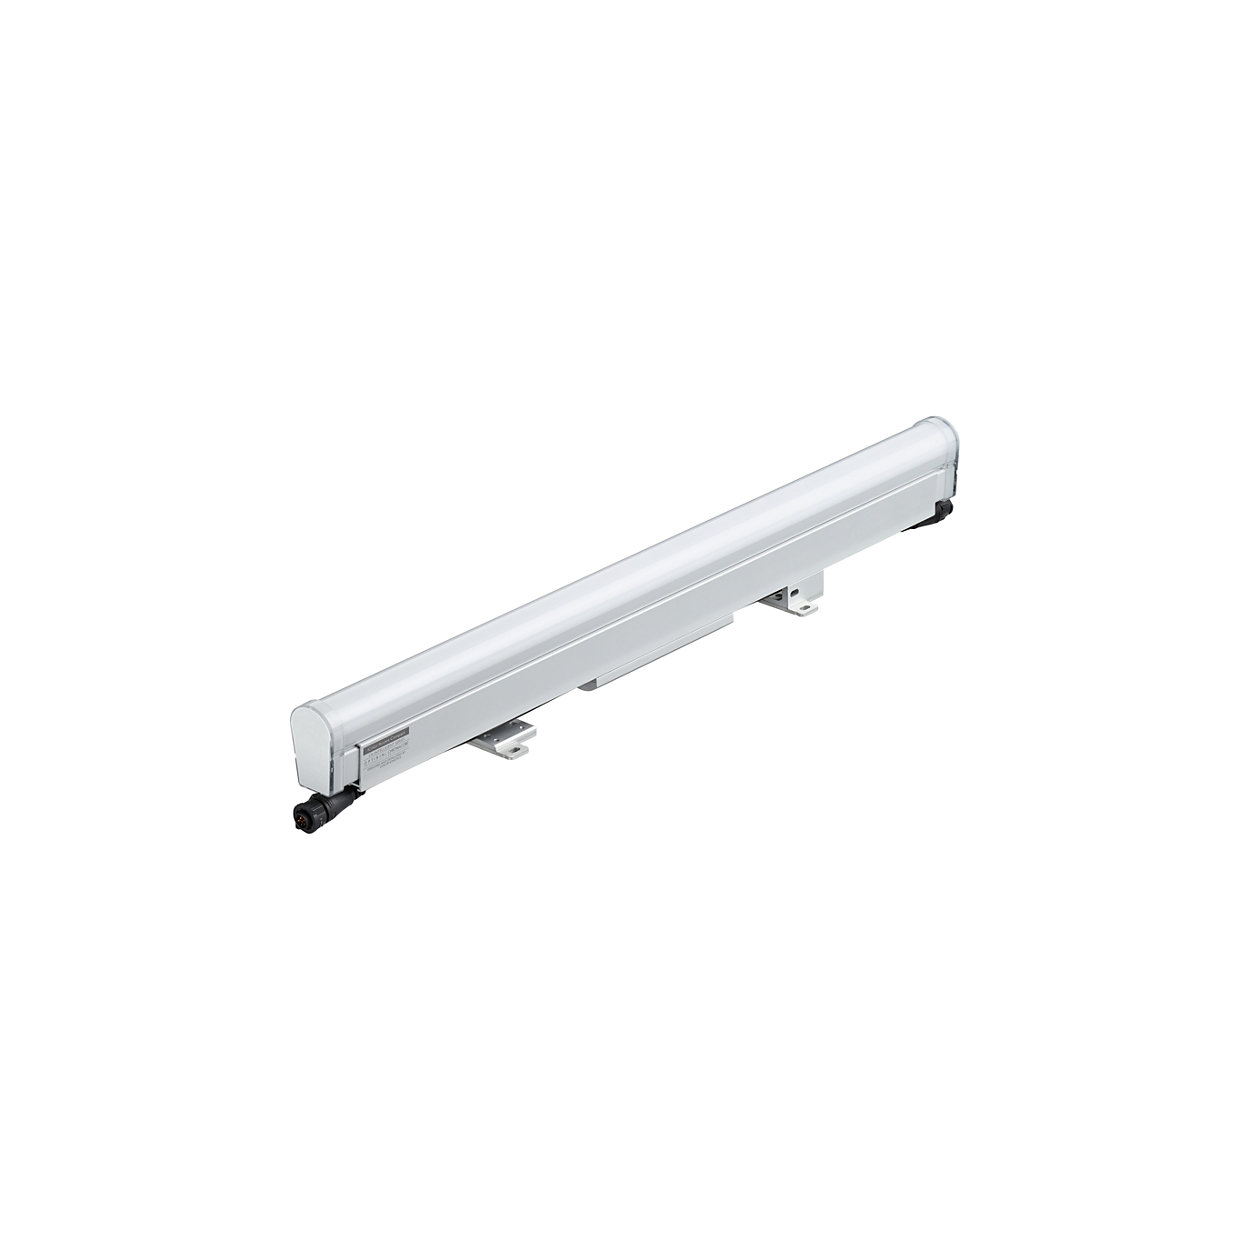 iColor Accent Compact - High resolution media direct view linear LED luminaire with RGBW color light